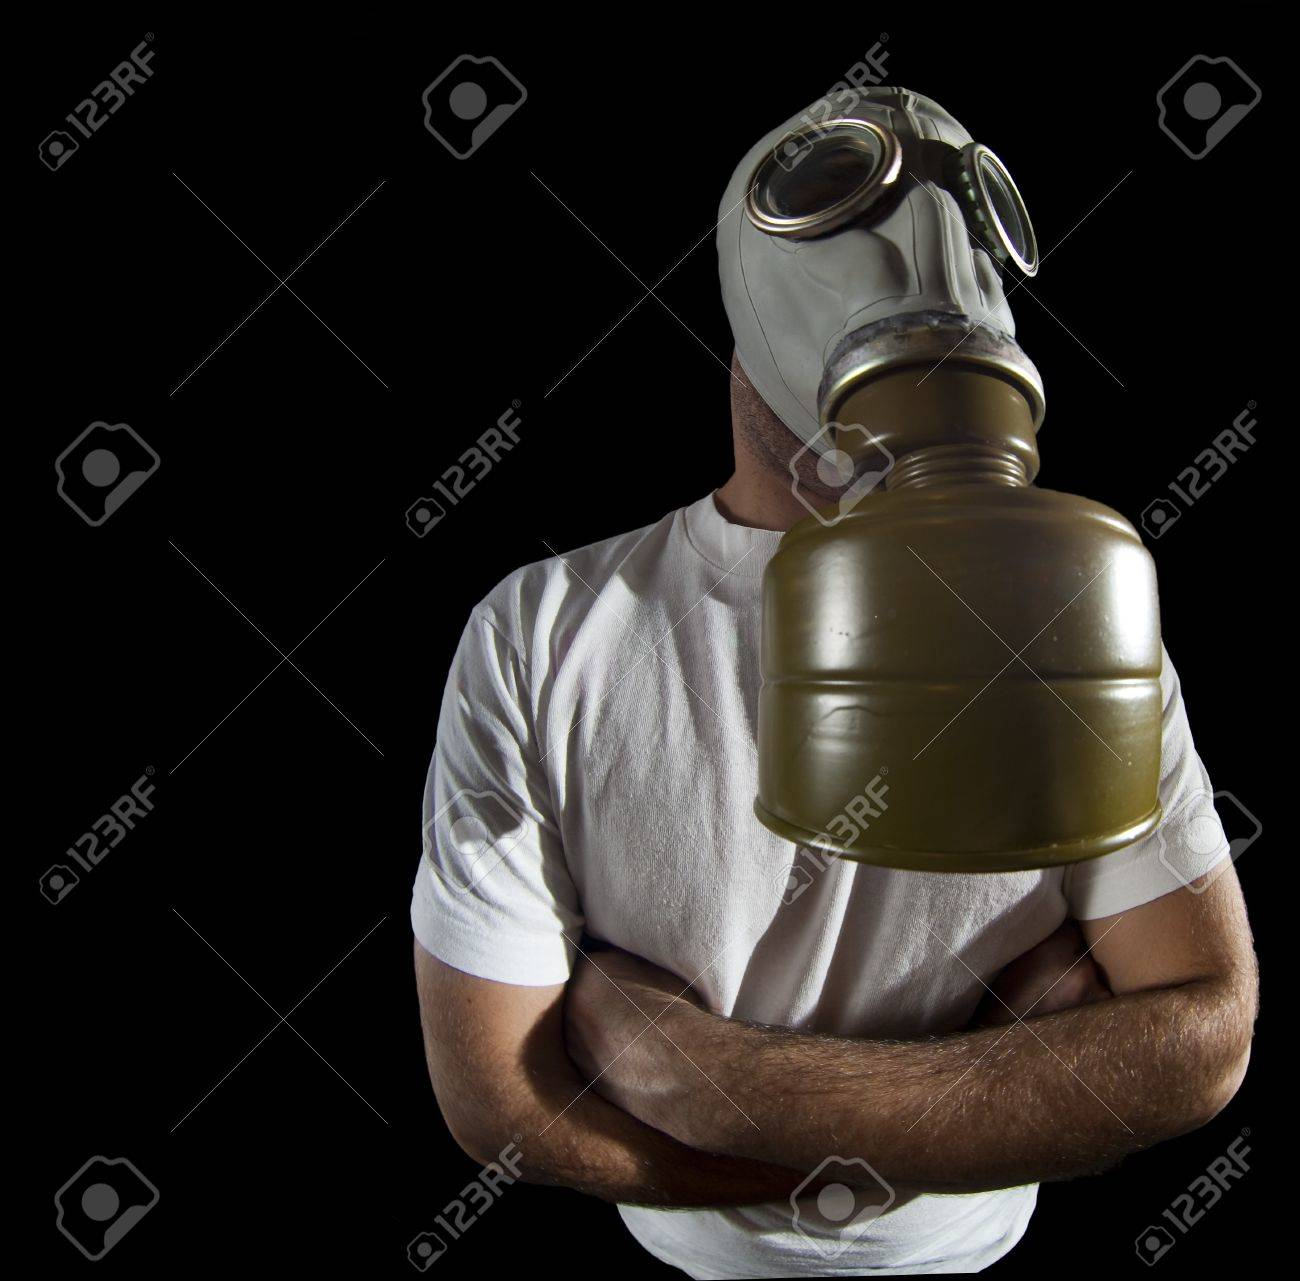 a man wearing a gas mask environment danger concept image Stock Photo - 4096112